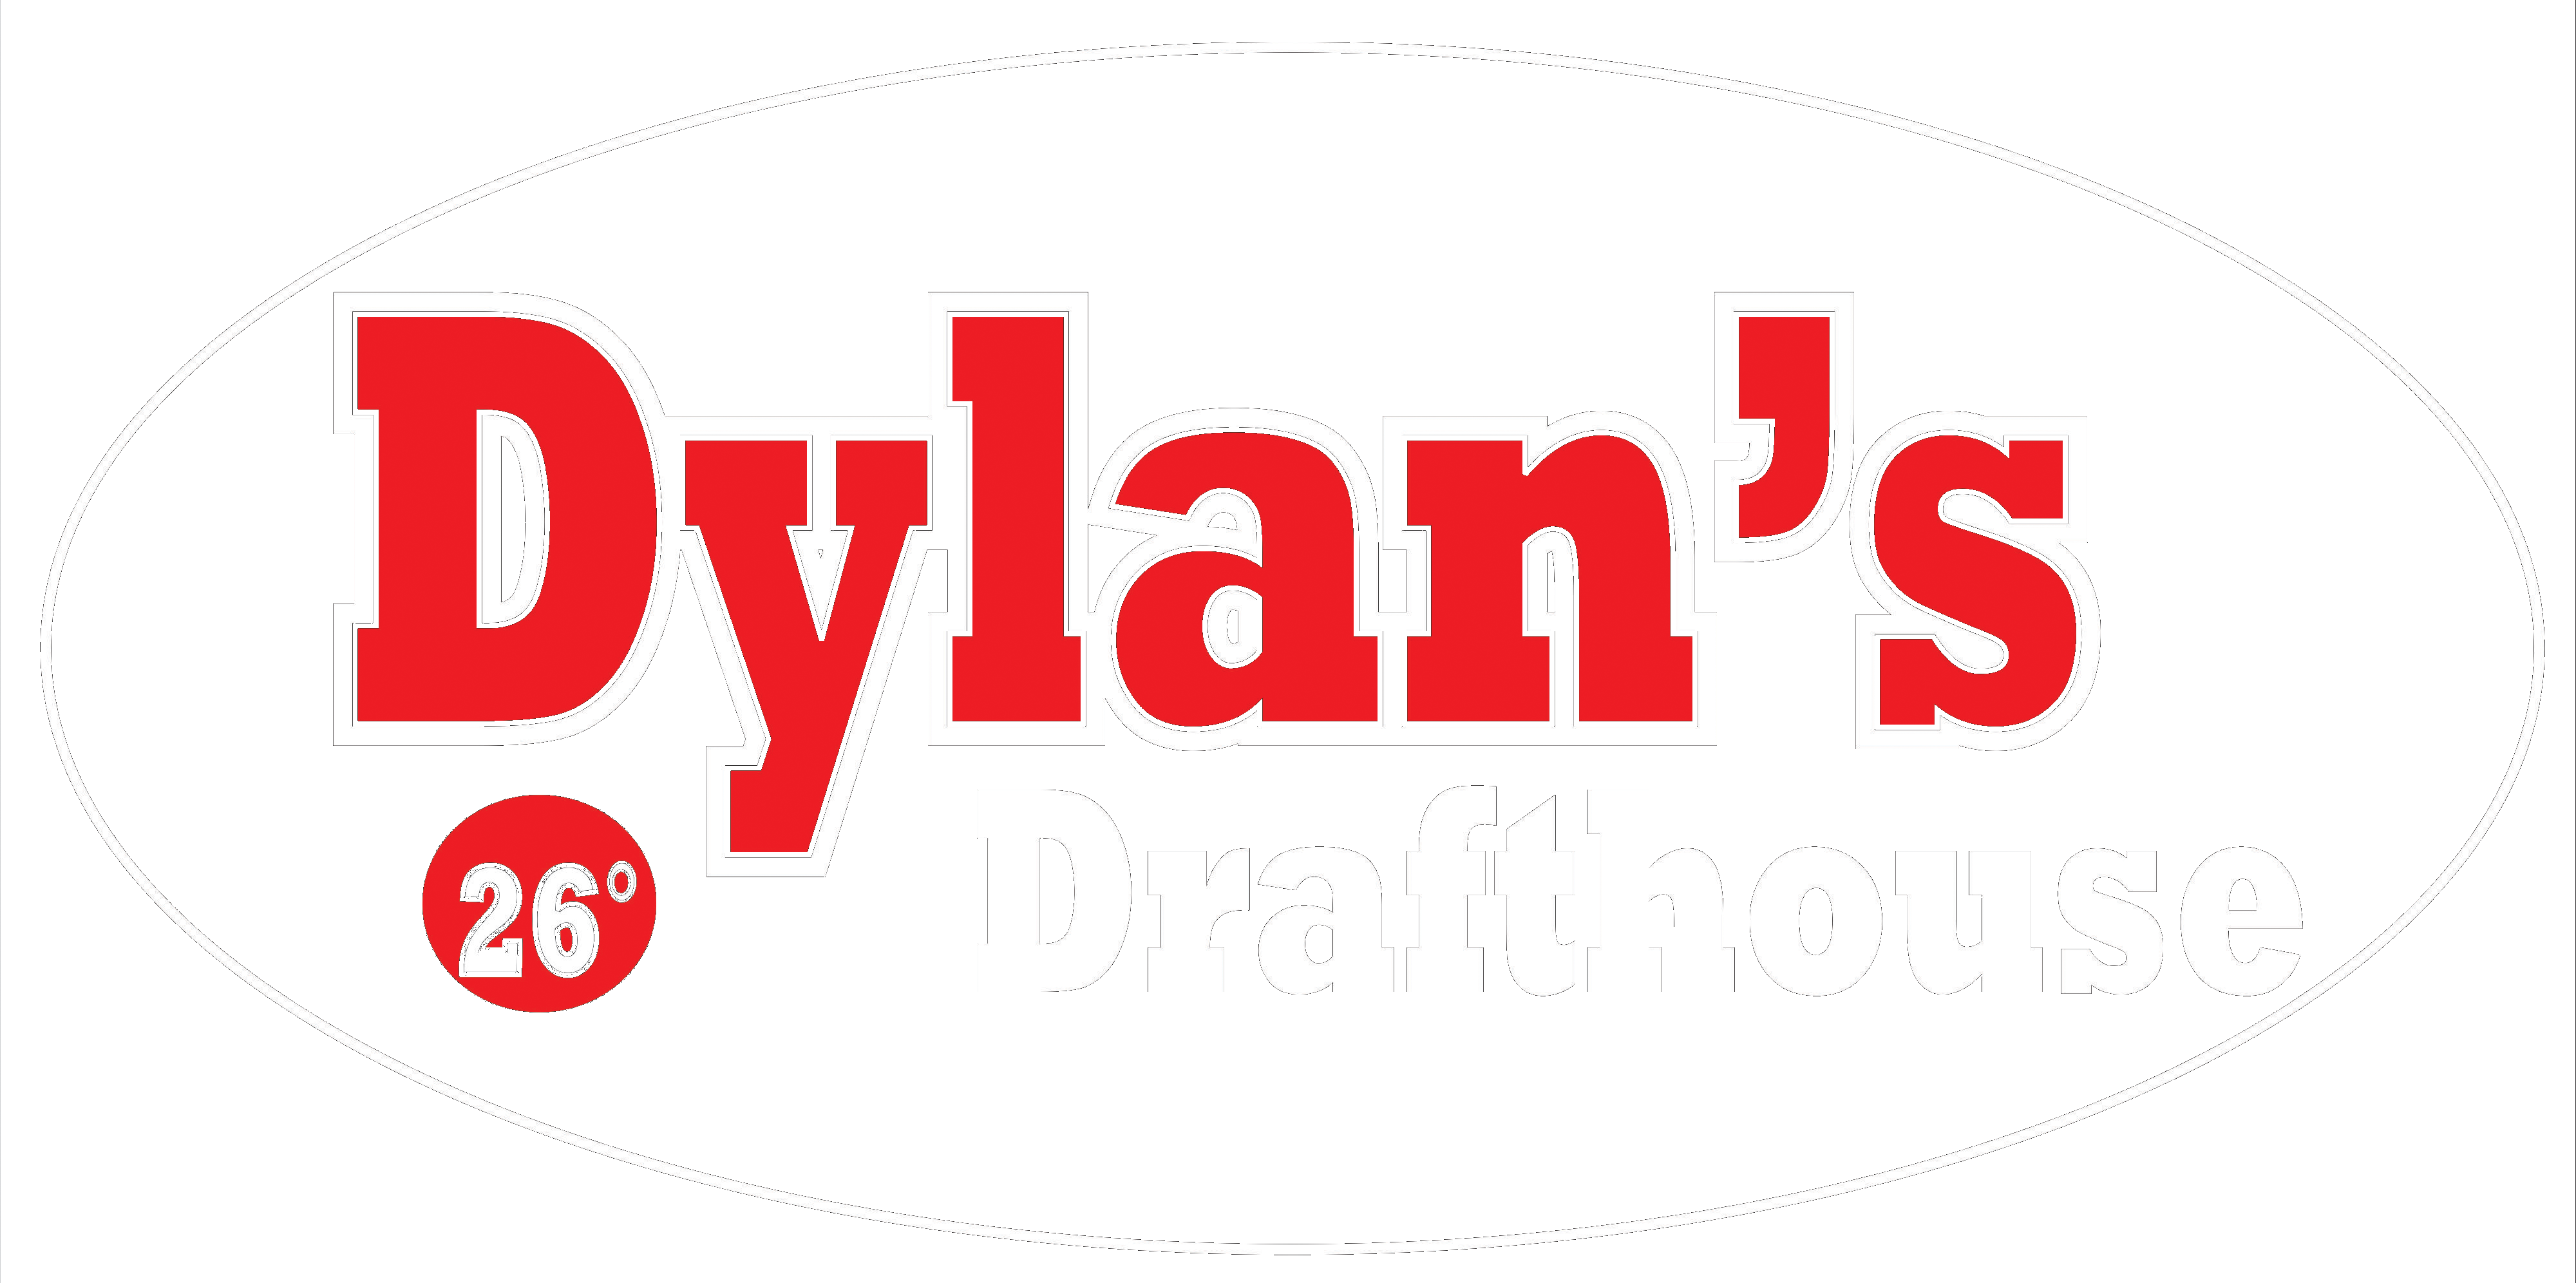 Dylan's Drafthouse Home